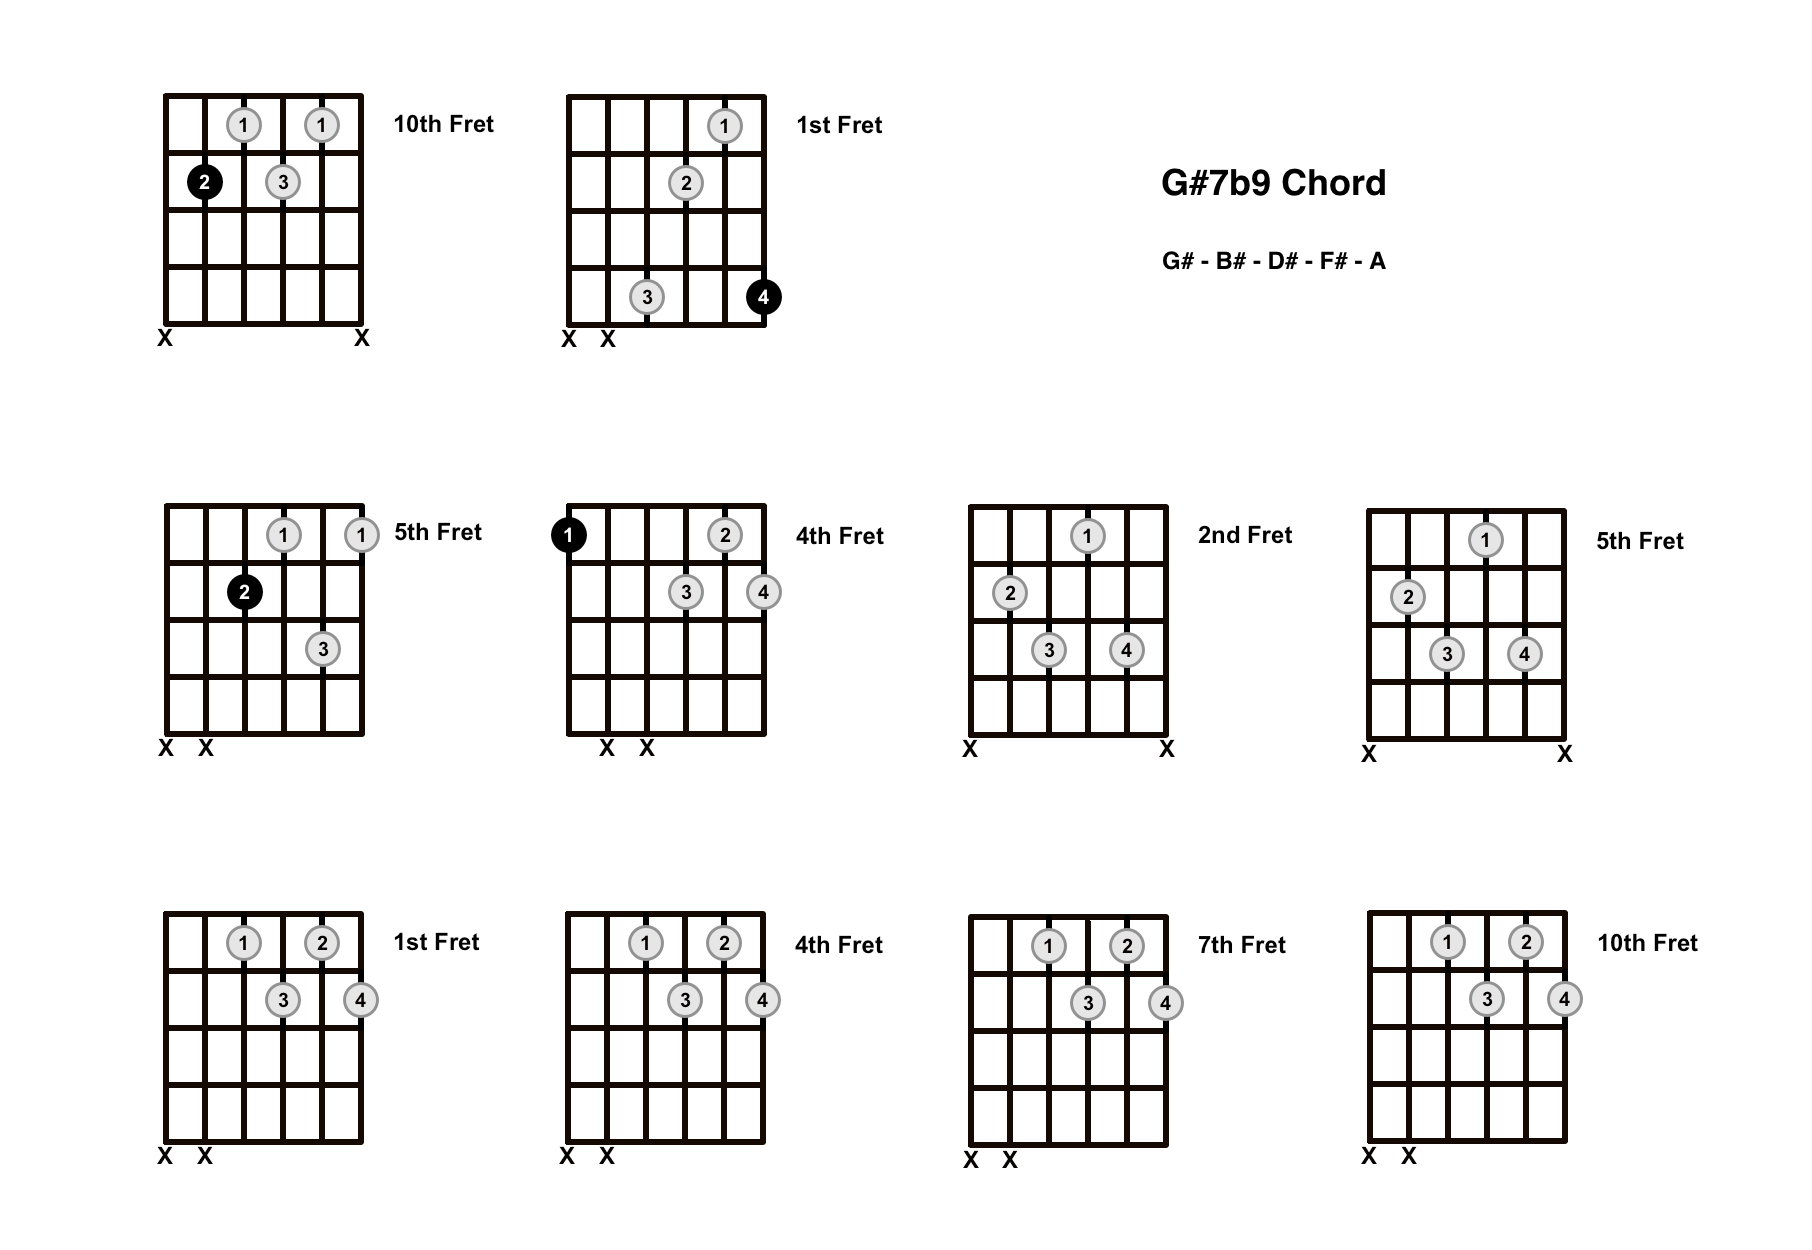 G#7b9 Chord On The Guitar (G Sharp 7 Flat 9) – Diagrams, Finger Positions and Theory